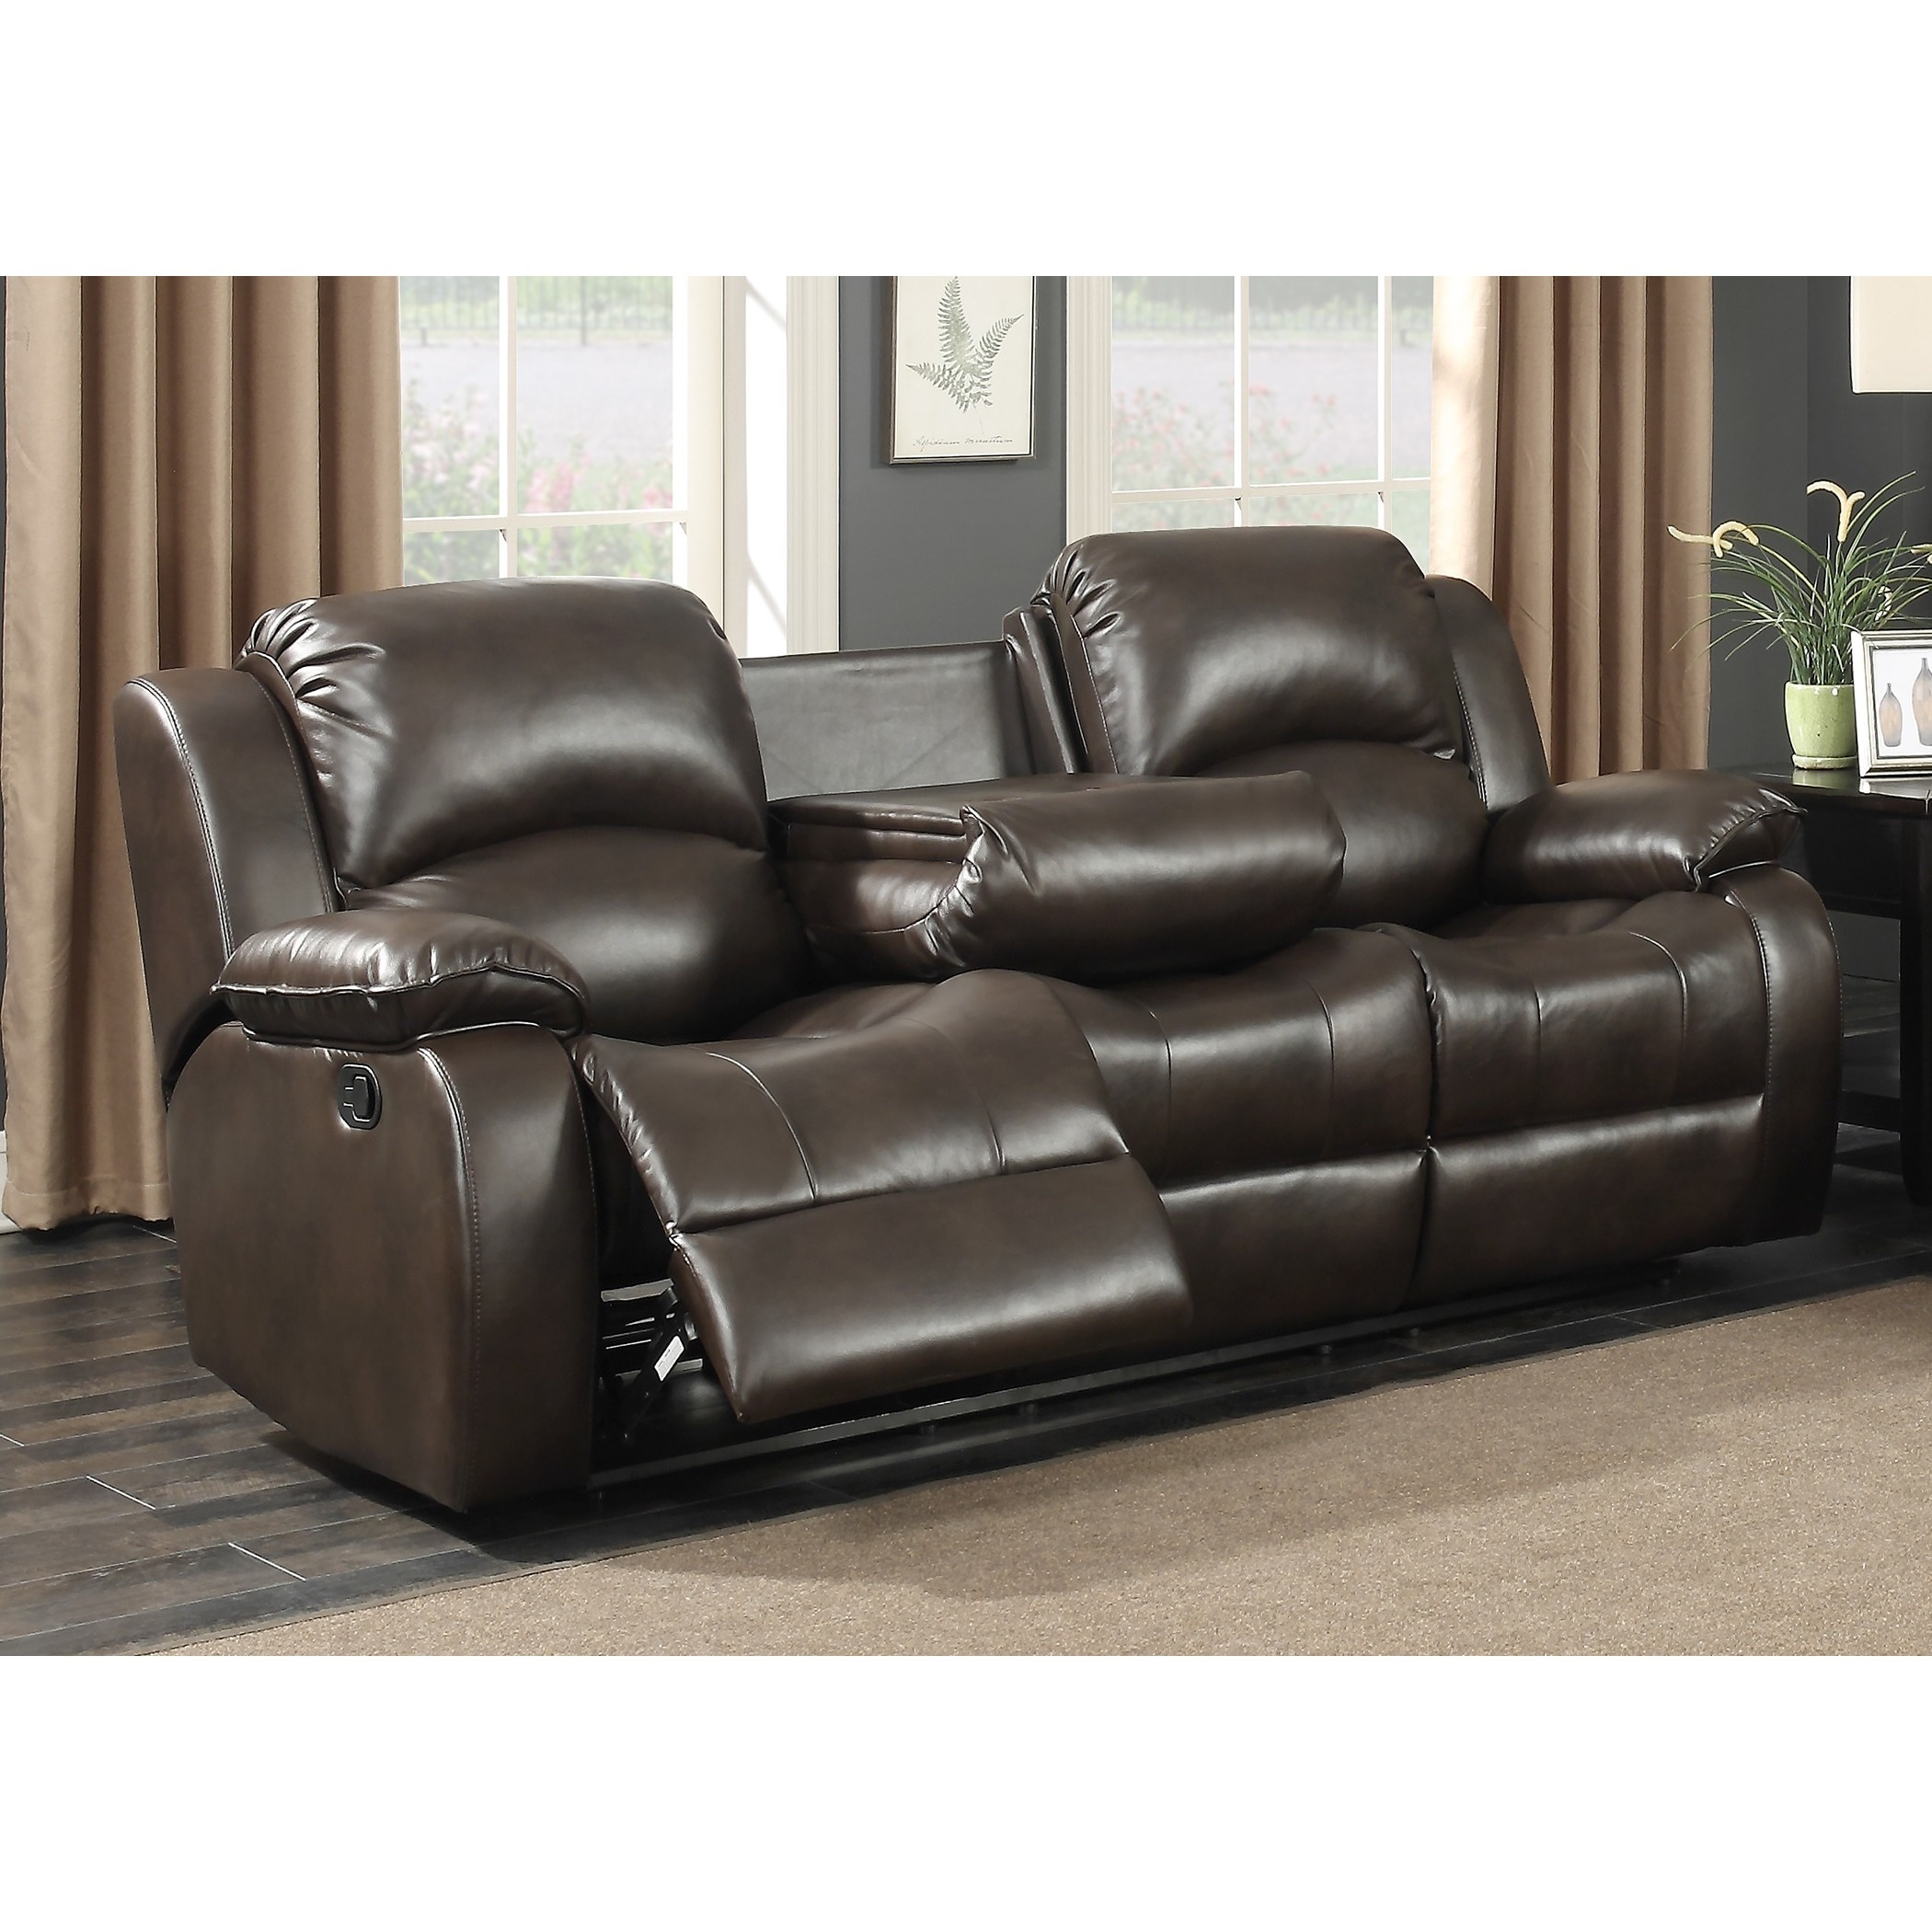 Miraculous Ac Pacific Samara Transitional Brown Leather Reclining Sofa With Drop Down Table Beatyapartments Chair Design Images Beatyapartmentscom